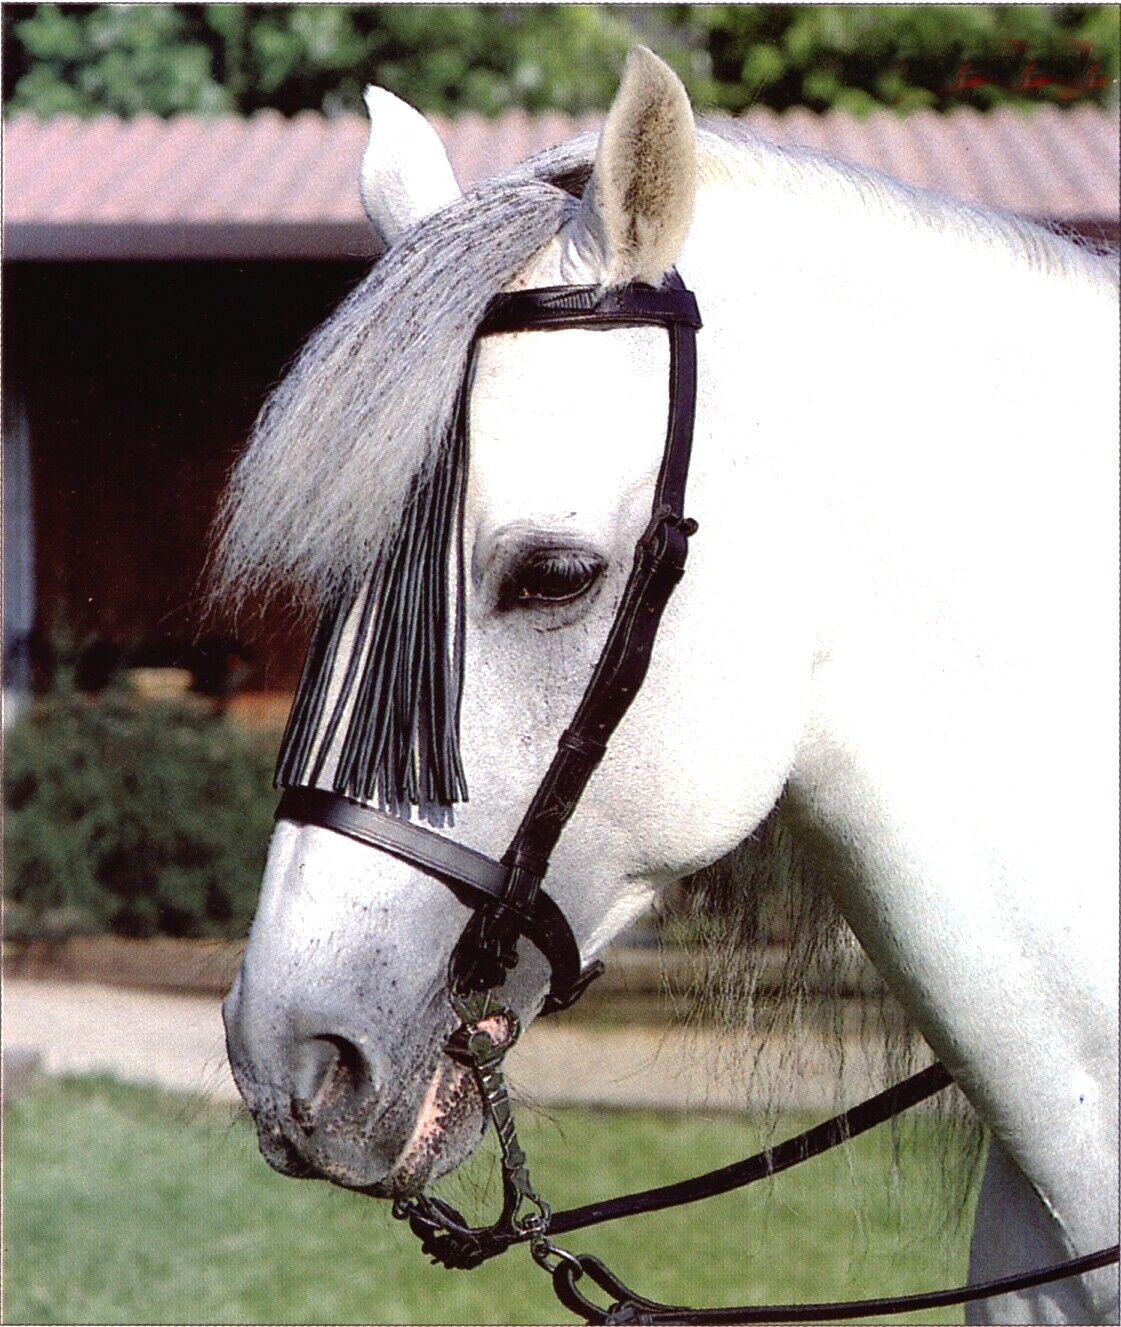 Bridle Vaquera Leather with Fringe Complete Reins